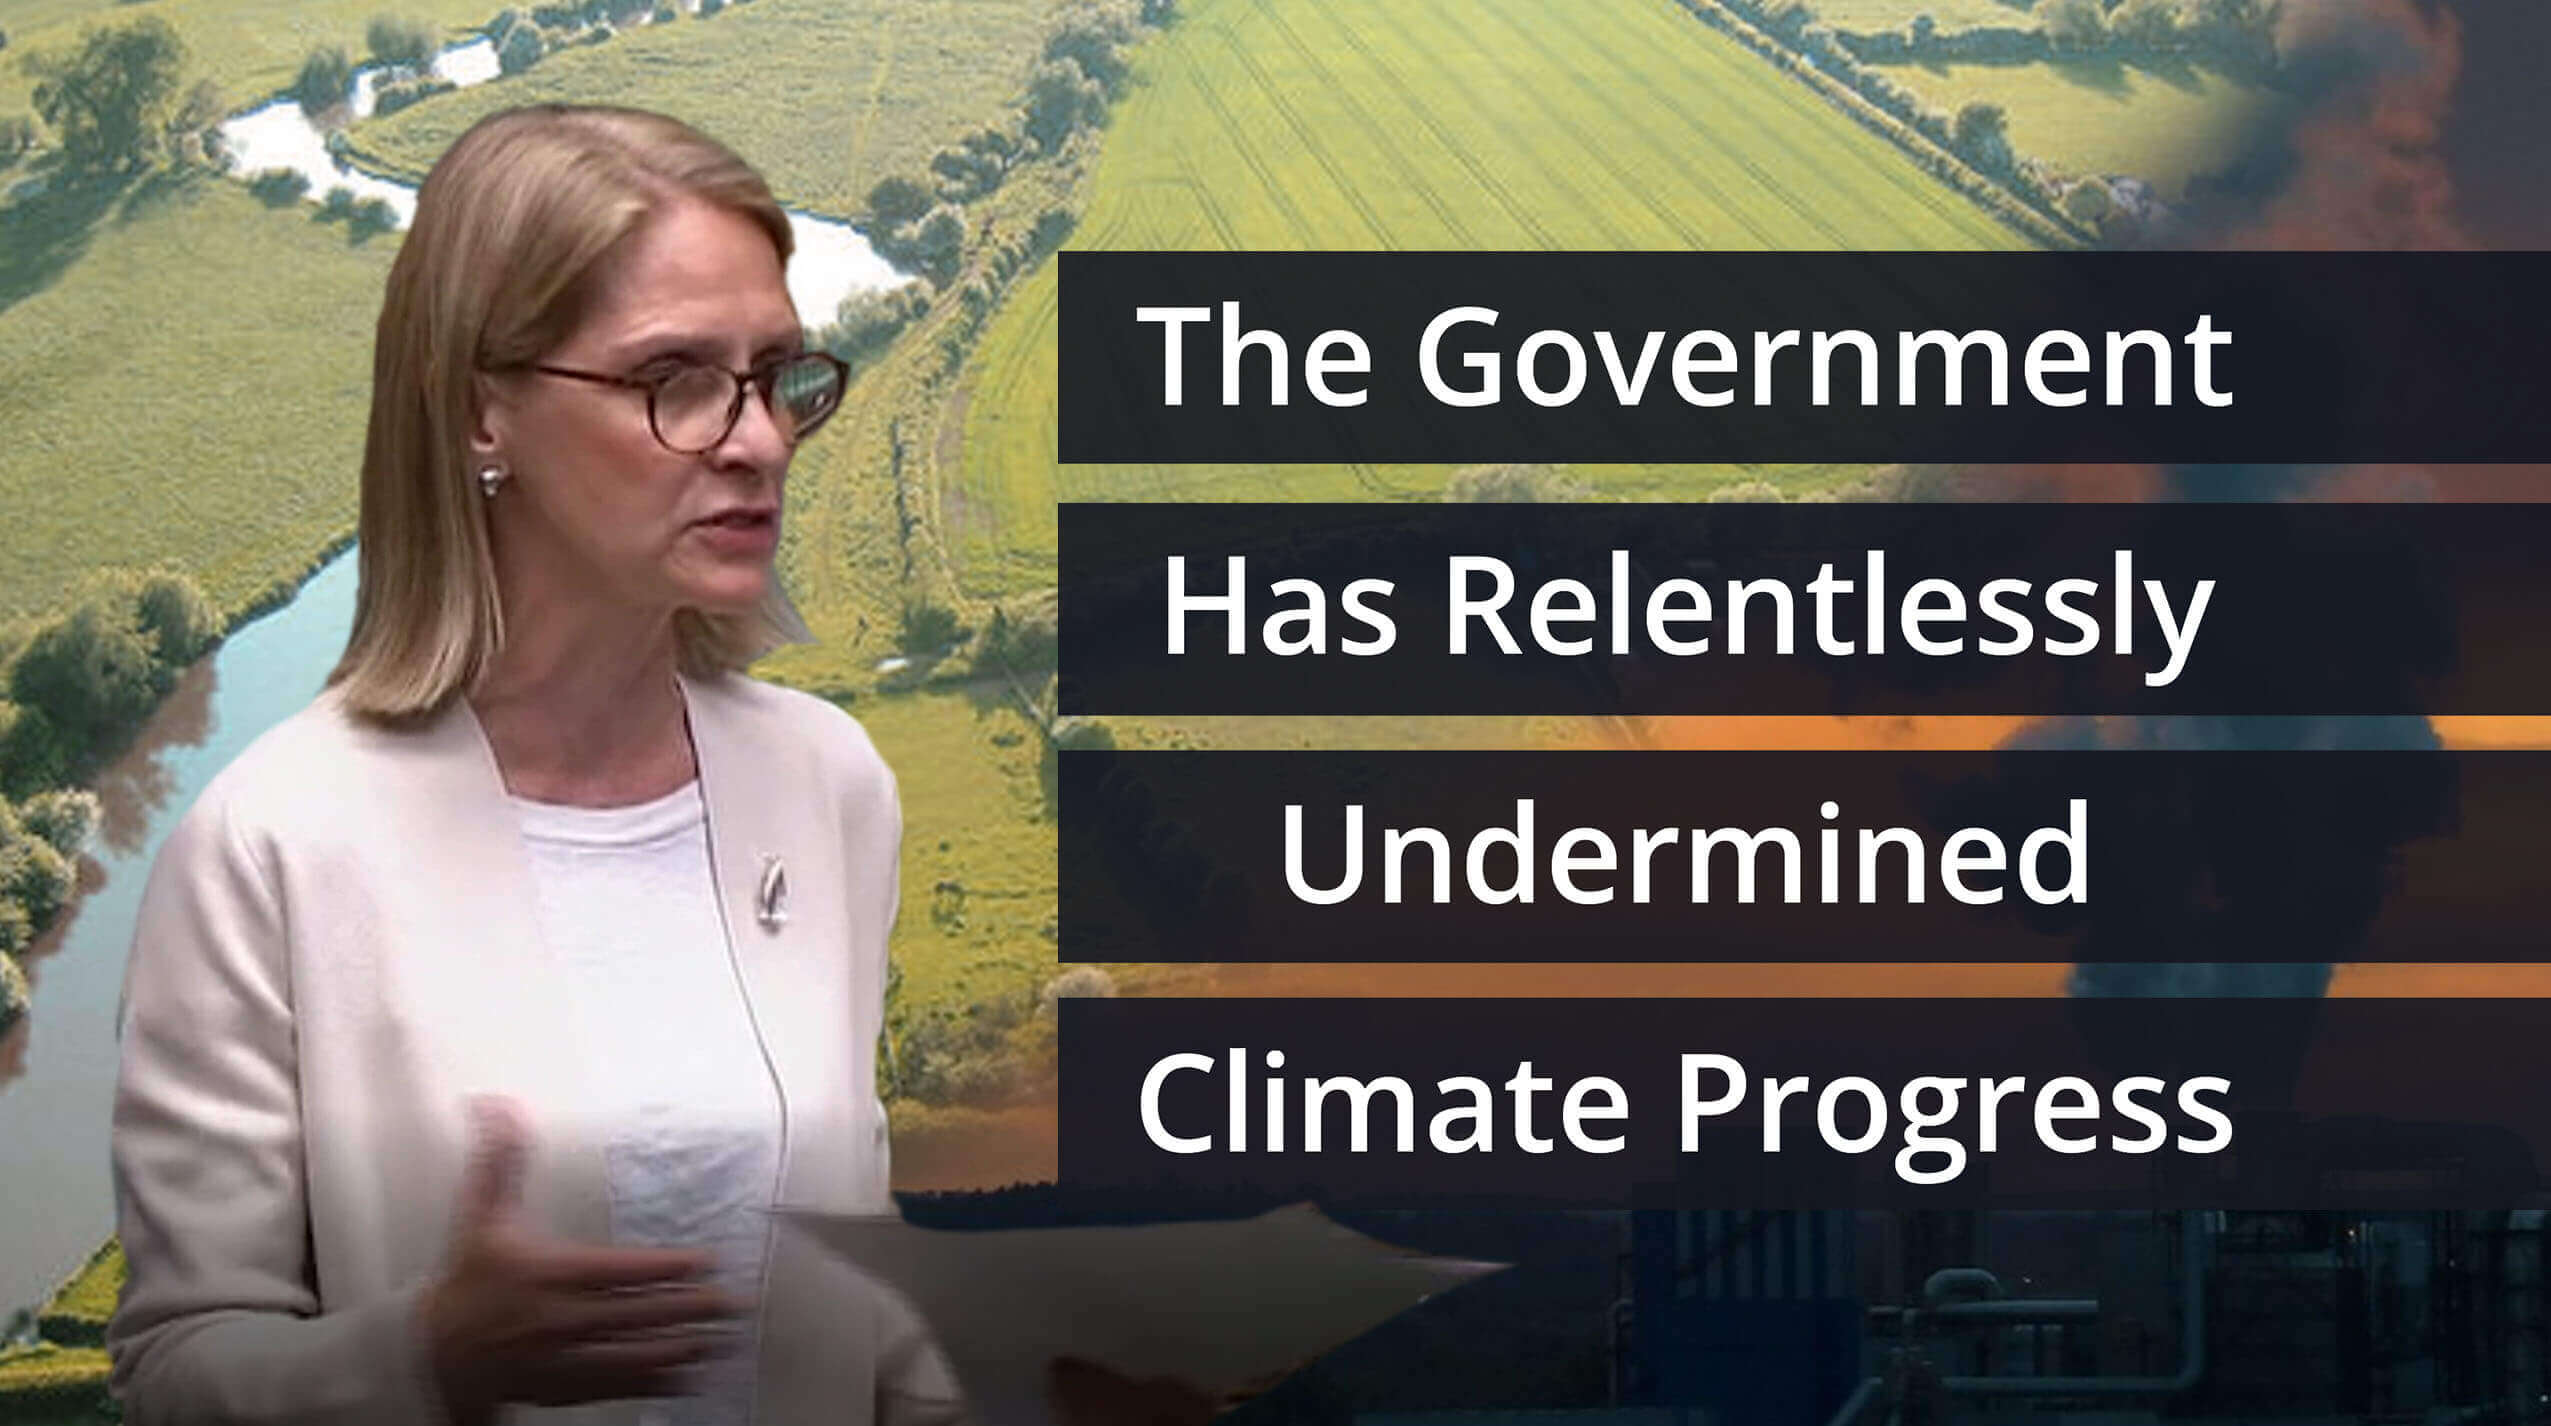 The Government Has Relentlessly Undermined Climate Progress